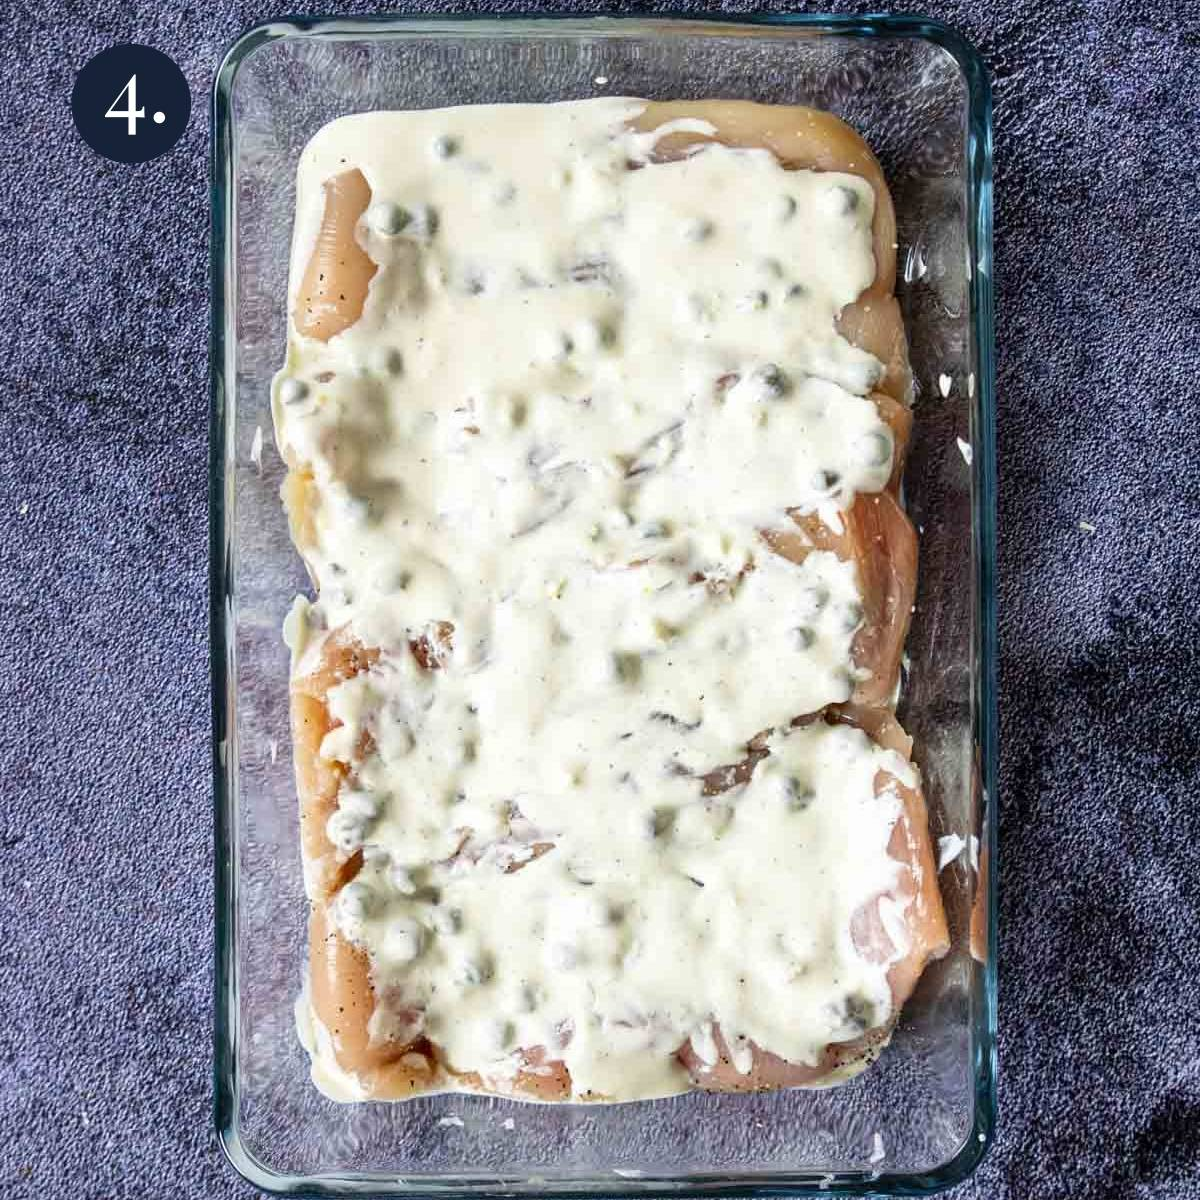 Ceasar Cream Sauce poured over top of raw chicken